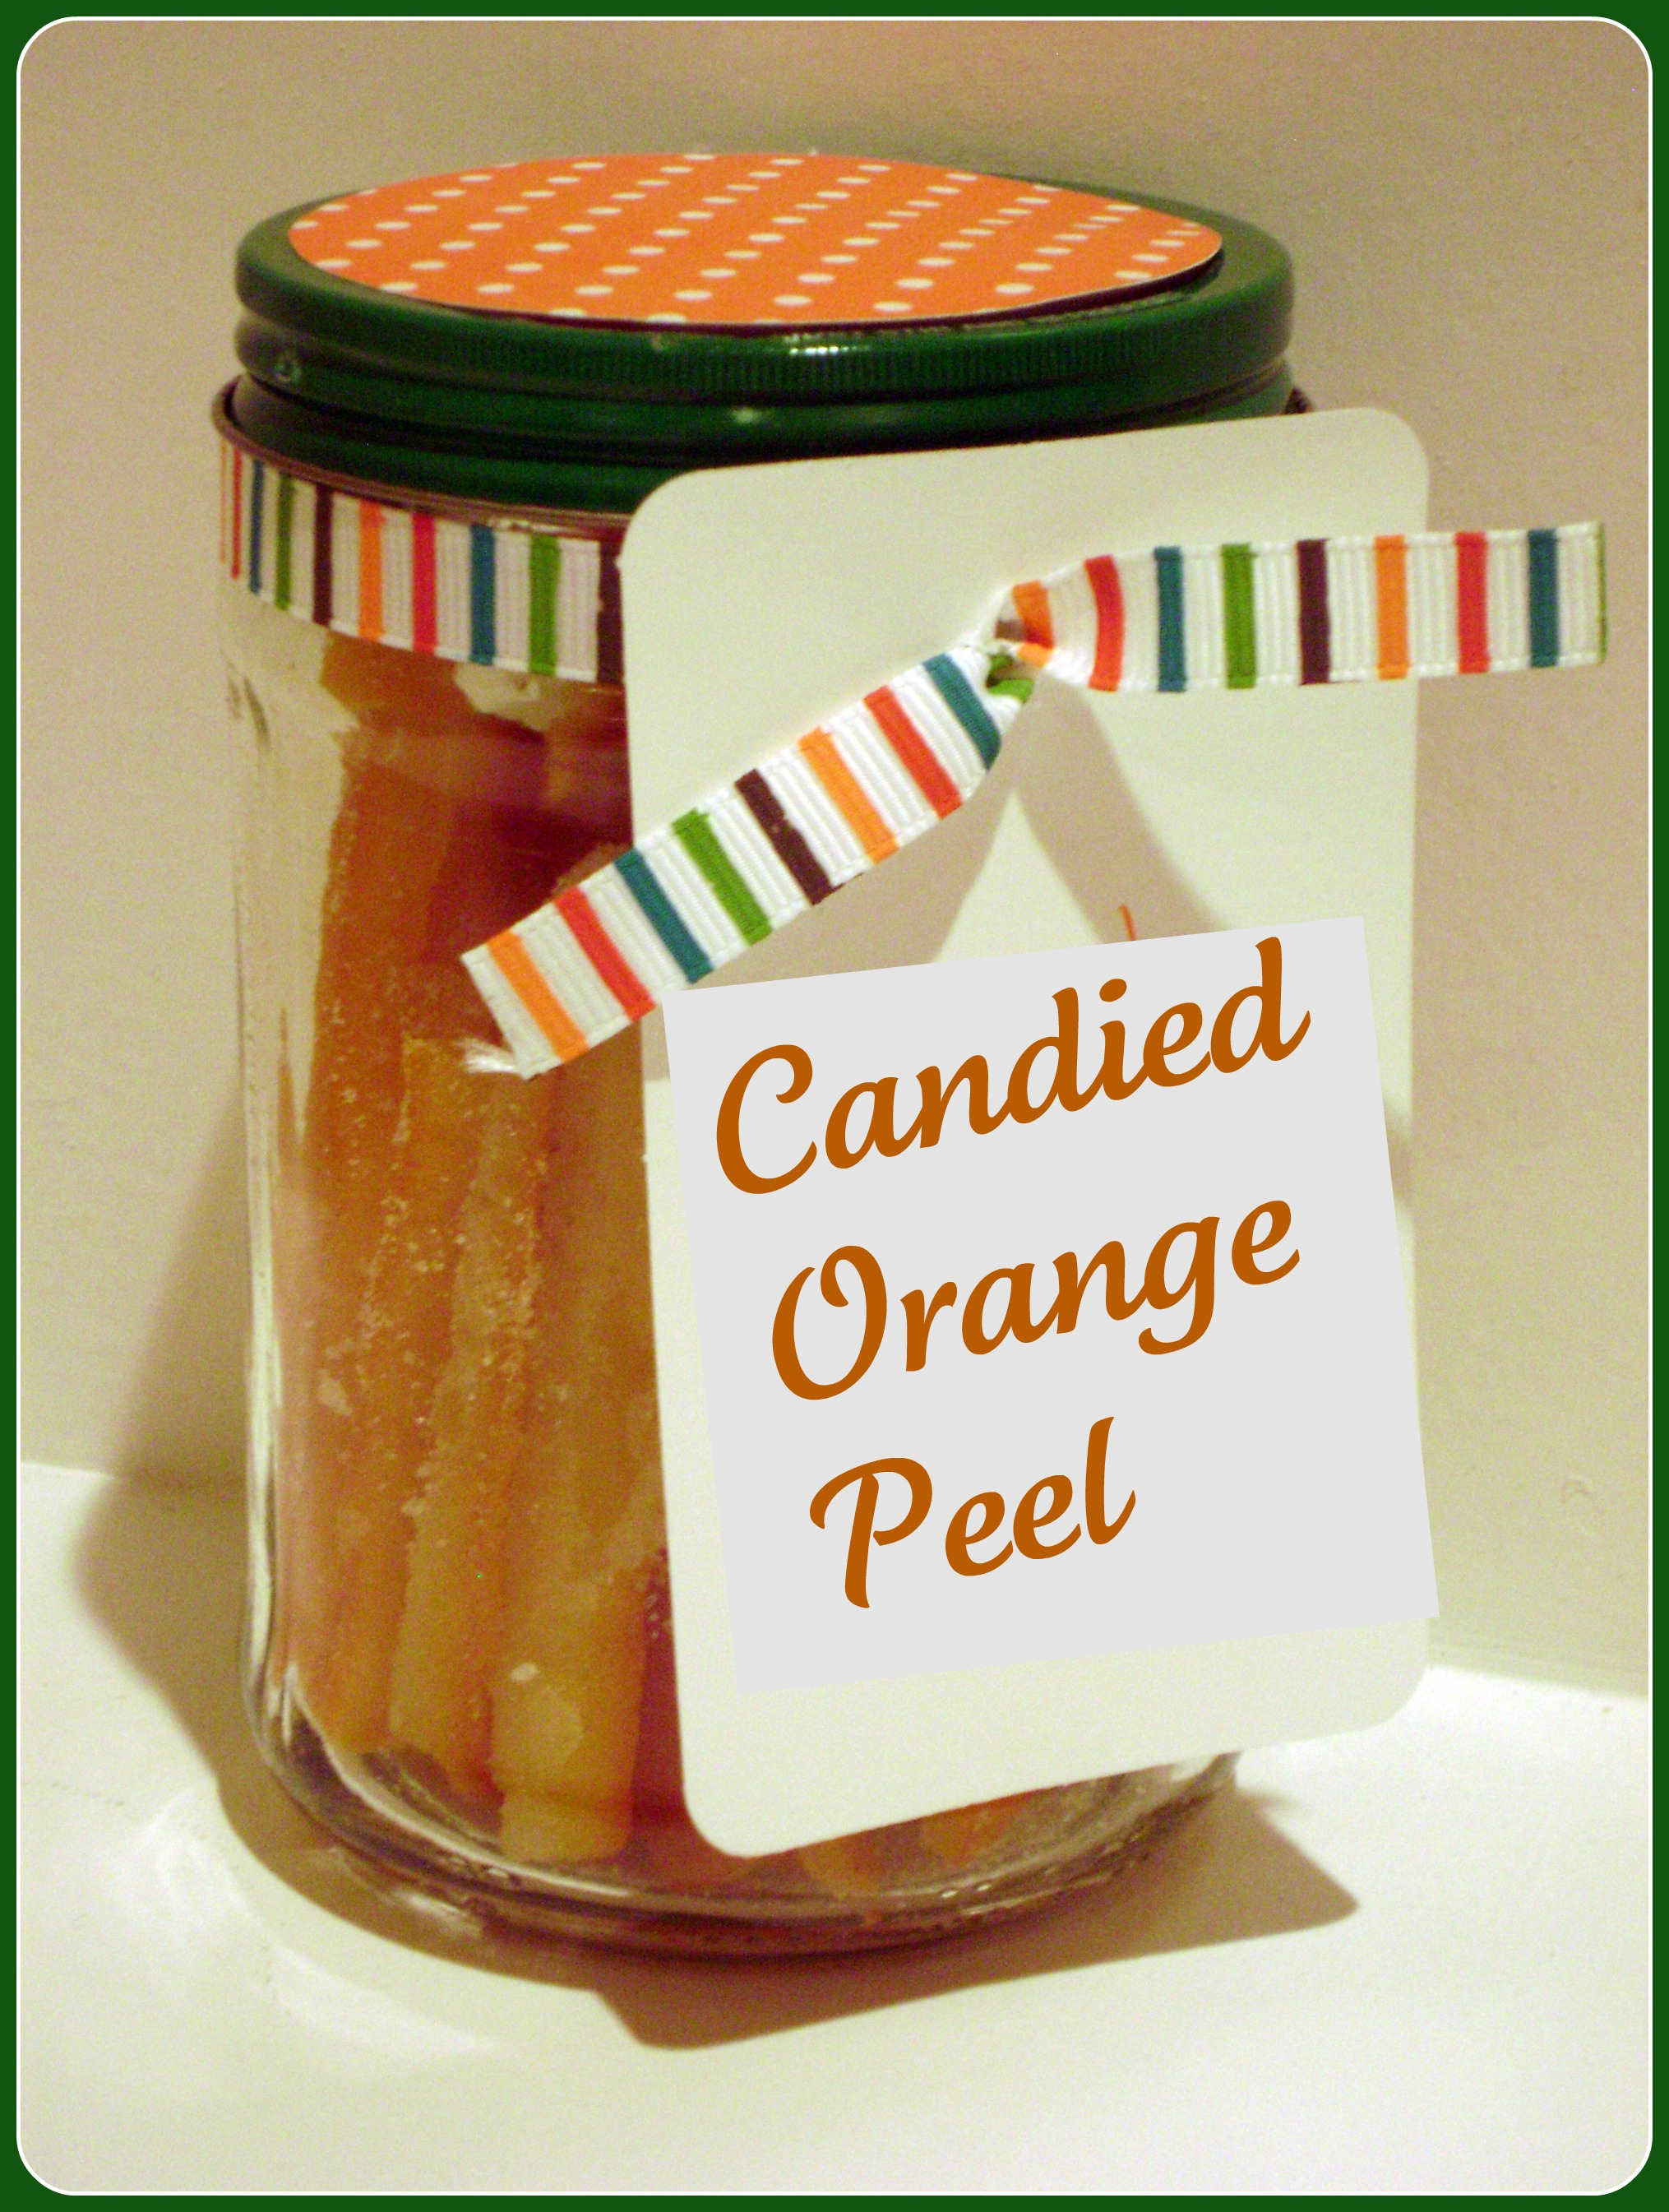 ... tasty treat! Have you had candied orange peel before? Are you a fan